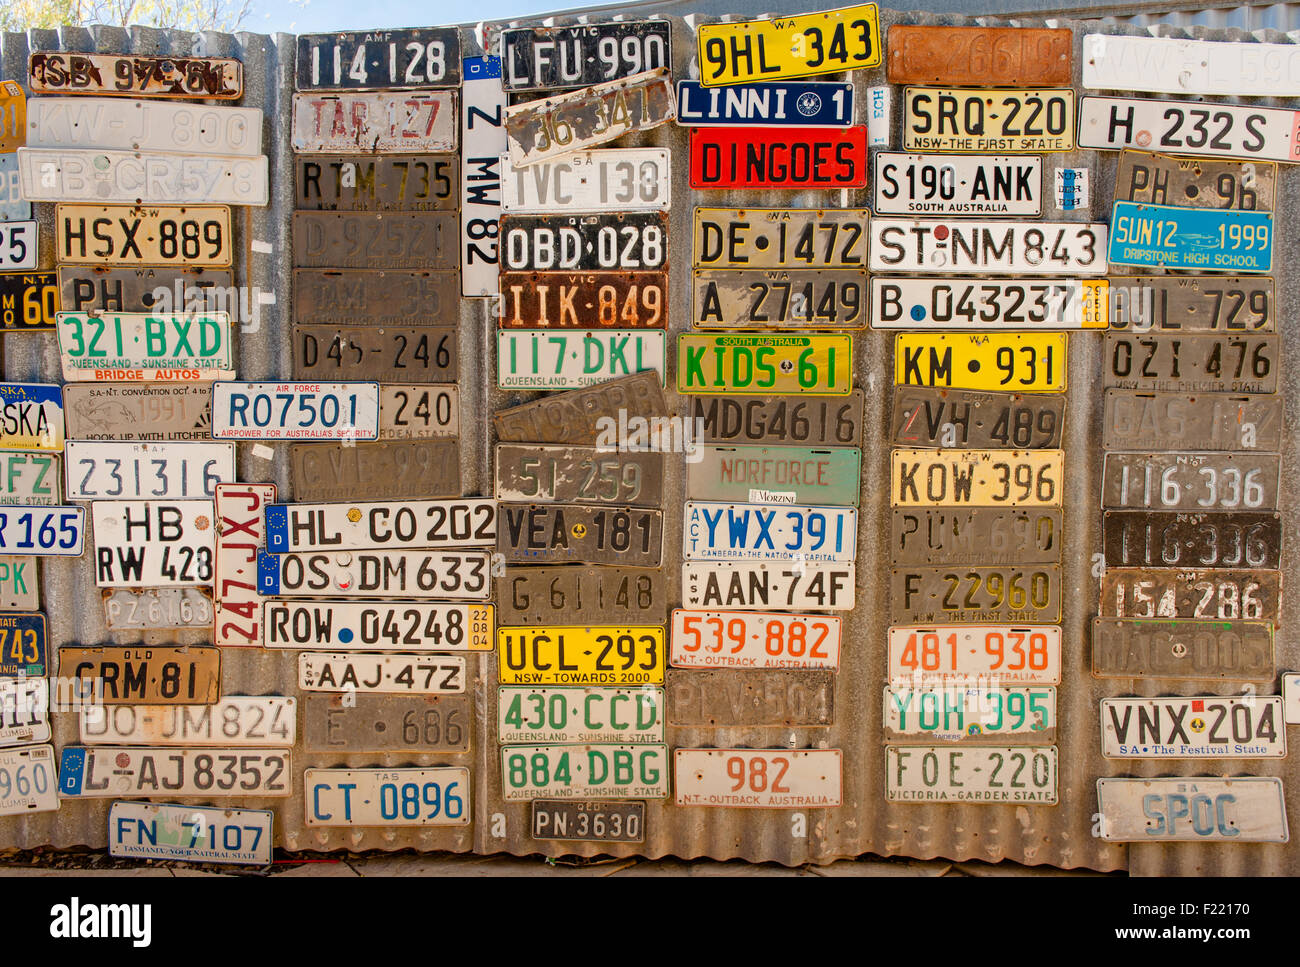 An outback legend of the Northern Territory: the Daly Waters Pub. Here: number plates of guest cars - Stock Image